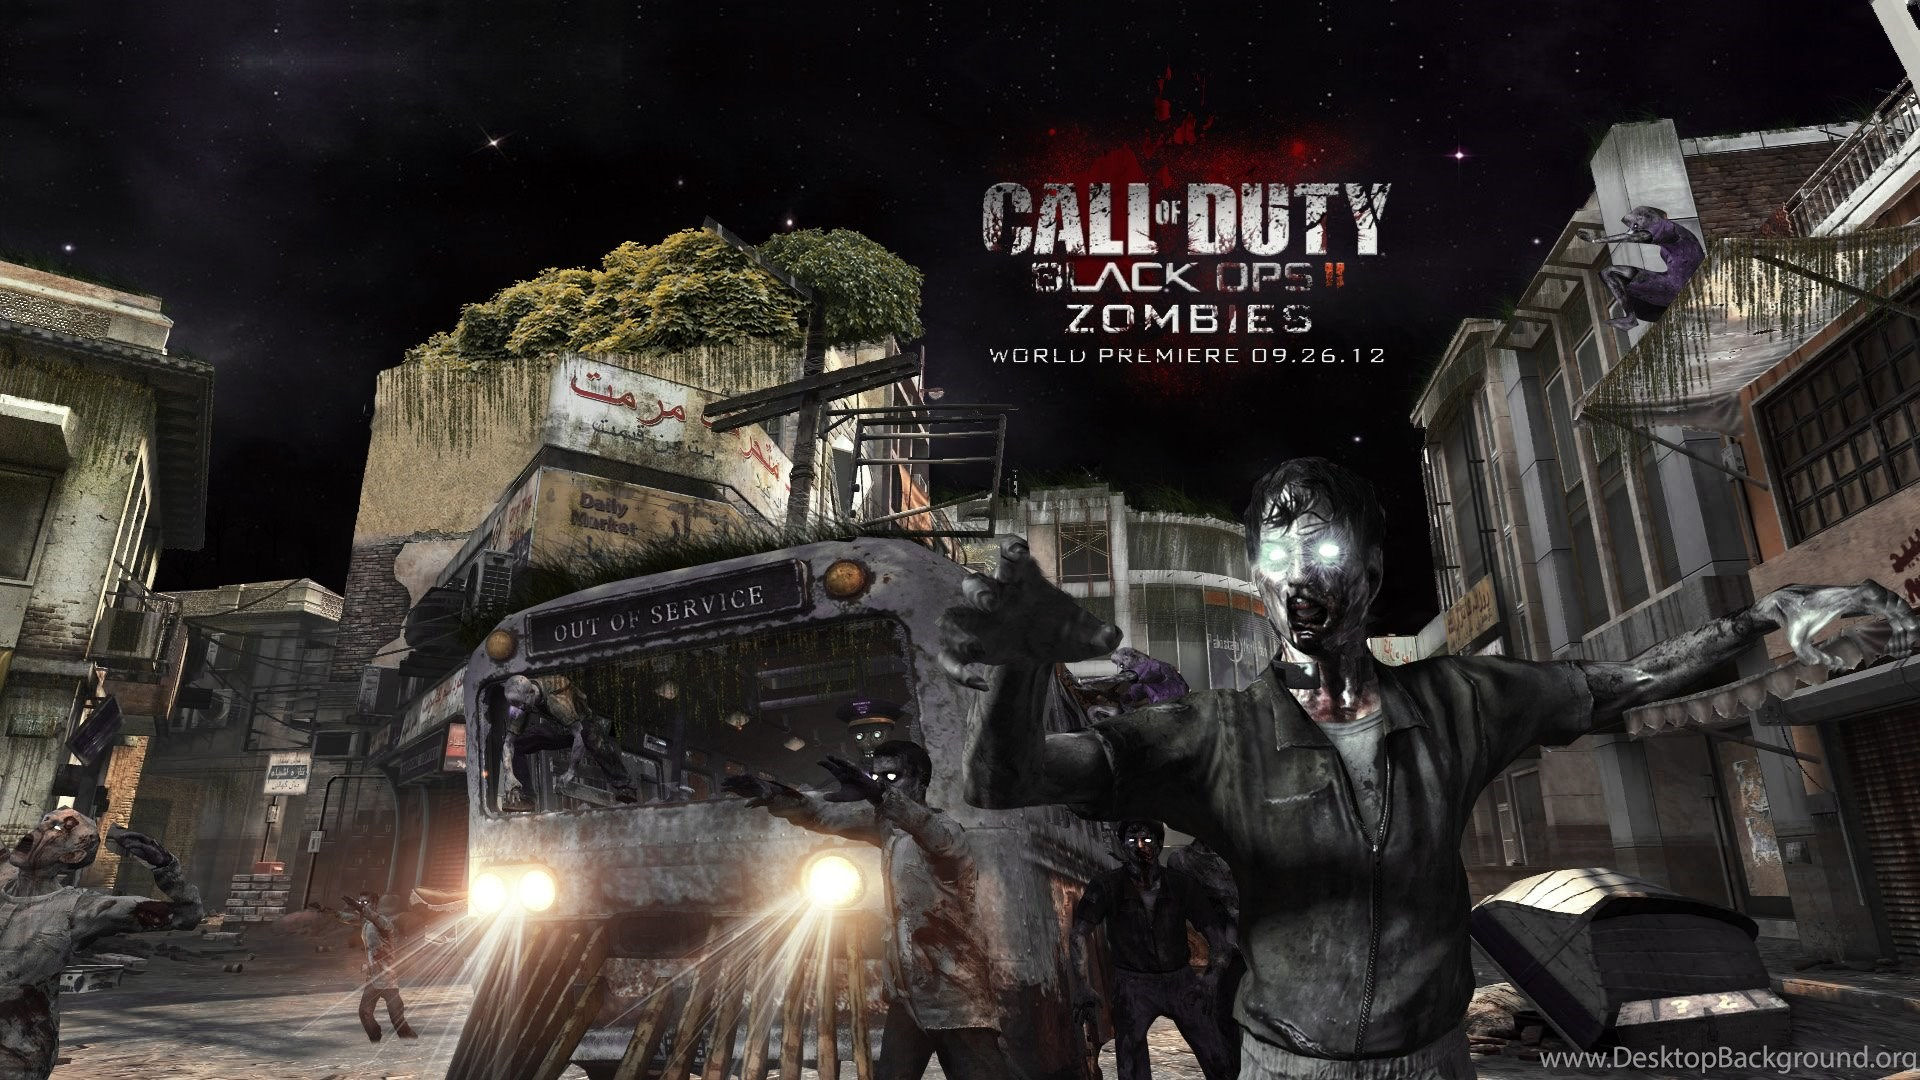 Call Of Duty Black Ops 2 Zombies Wallpapers Desktop Background